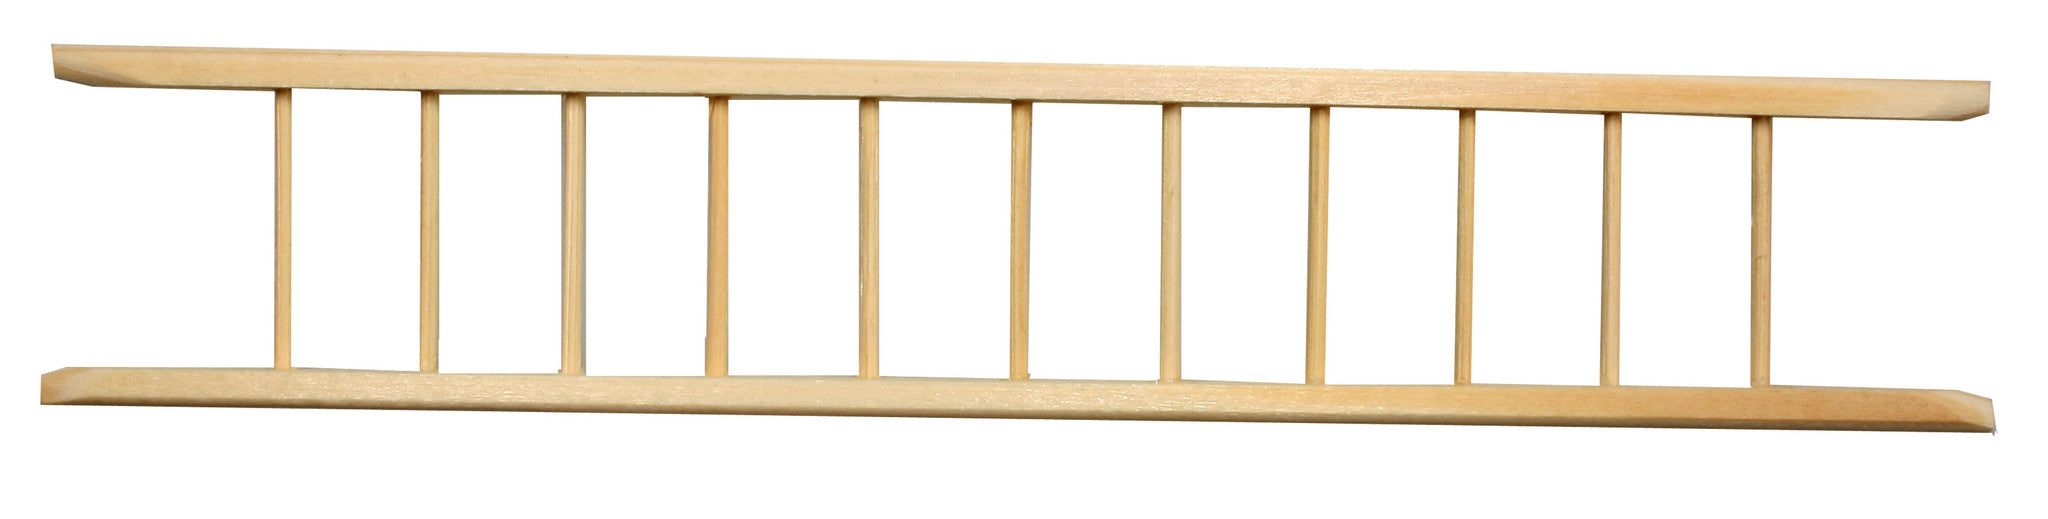 "Wooden Ladder - 7"" long"